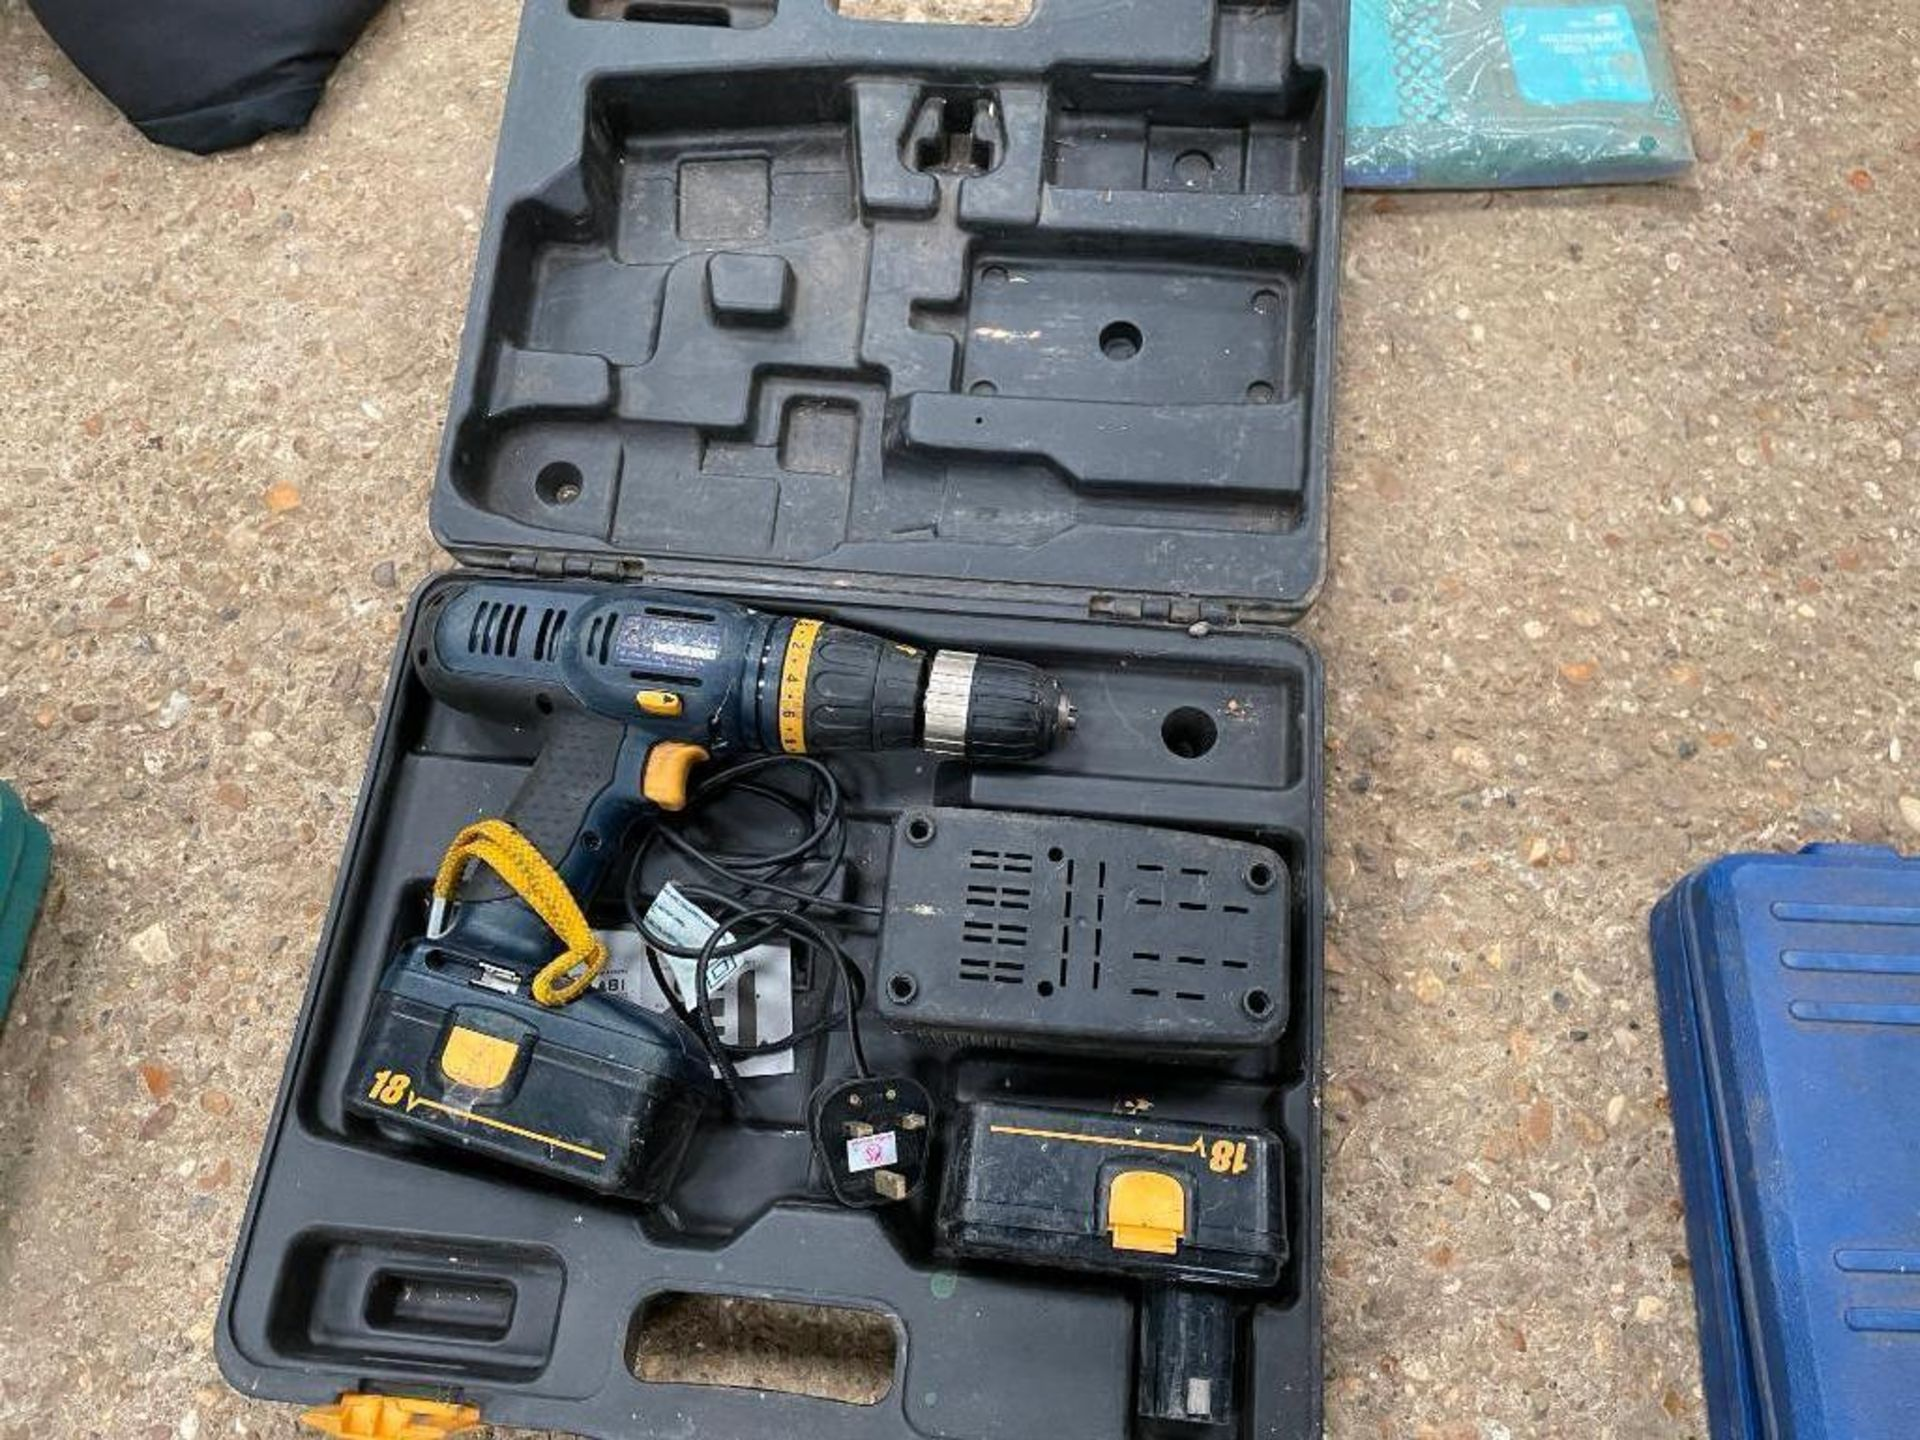 Pro 18V battery drill with 2 batteries and charger - Image 2 of 2